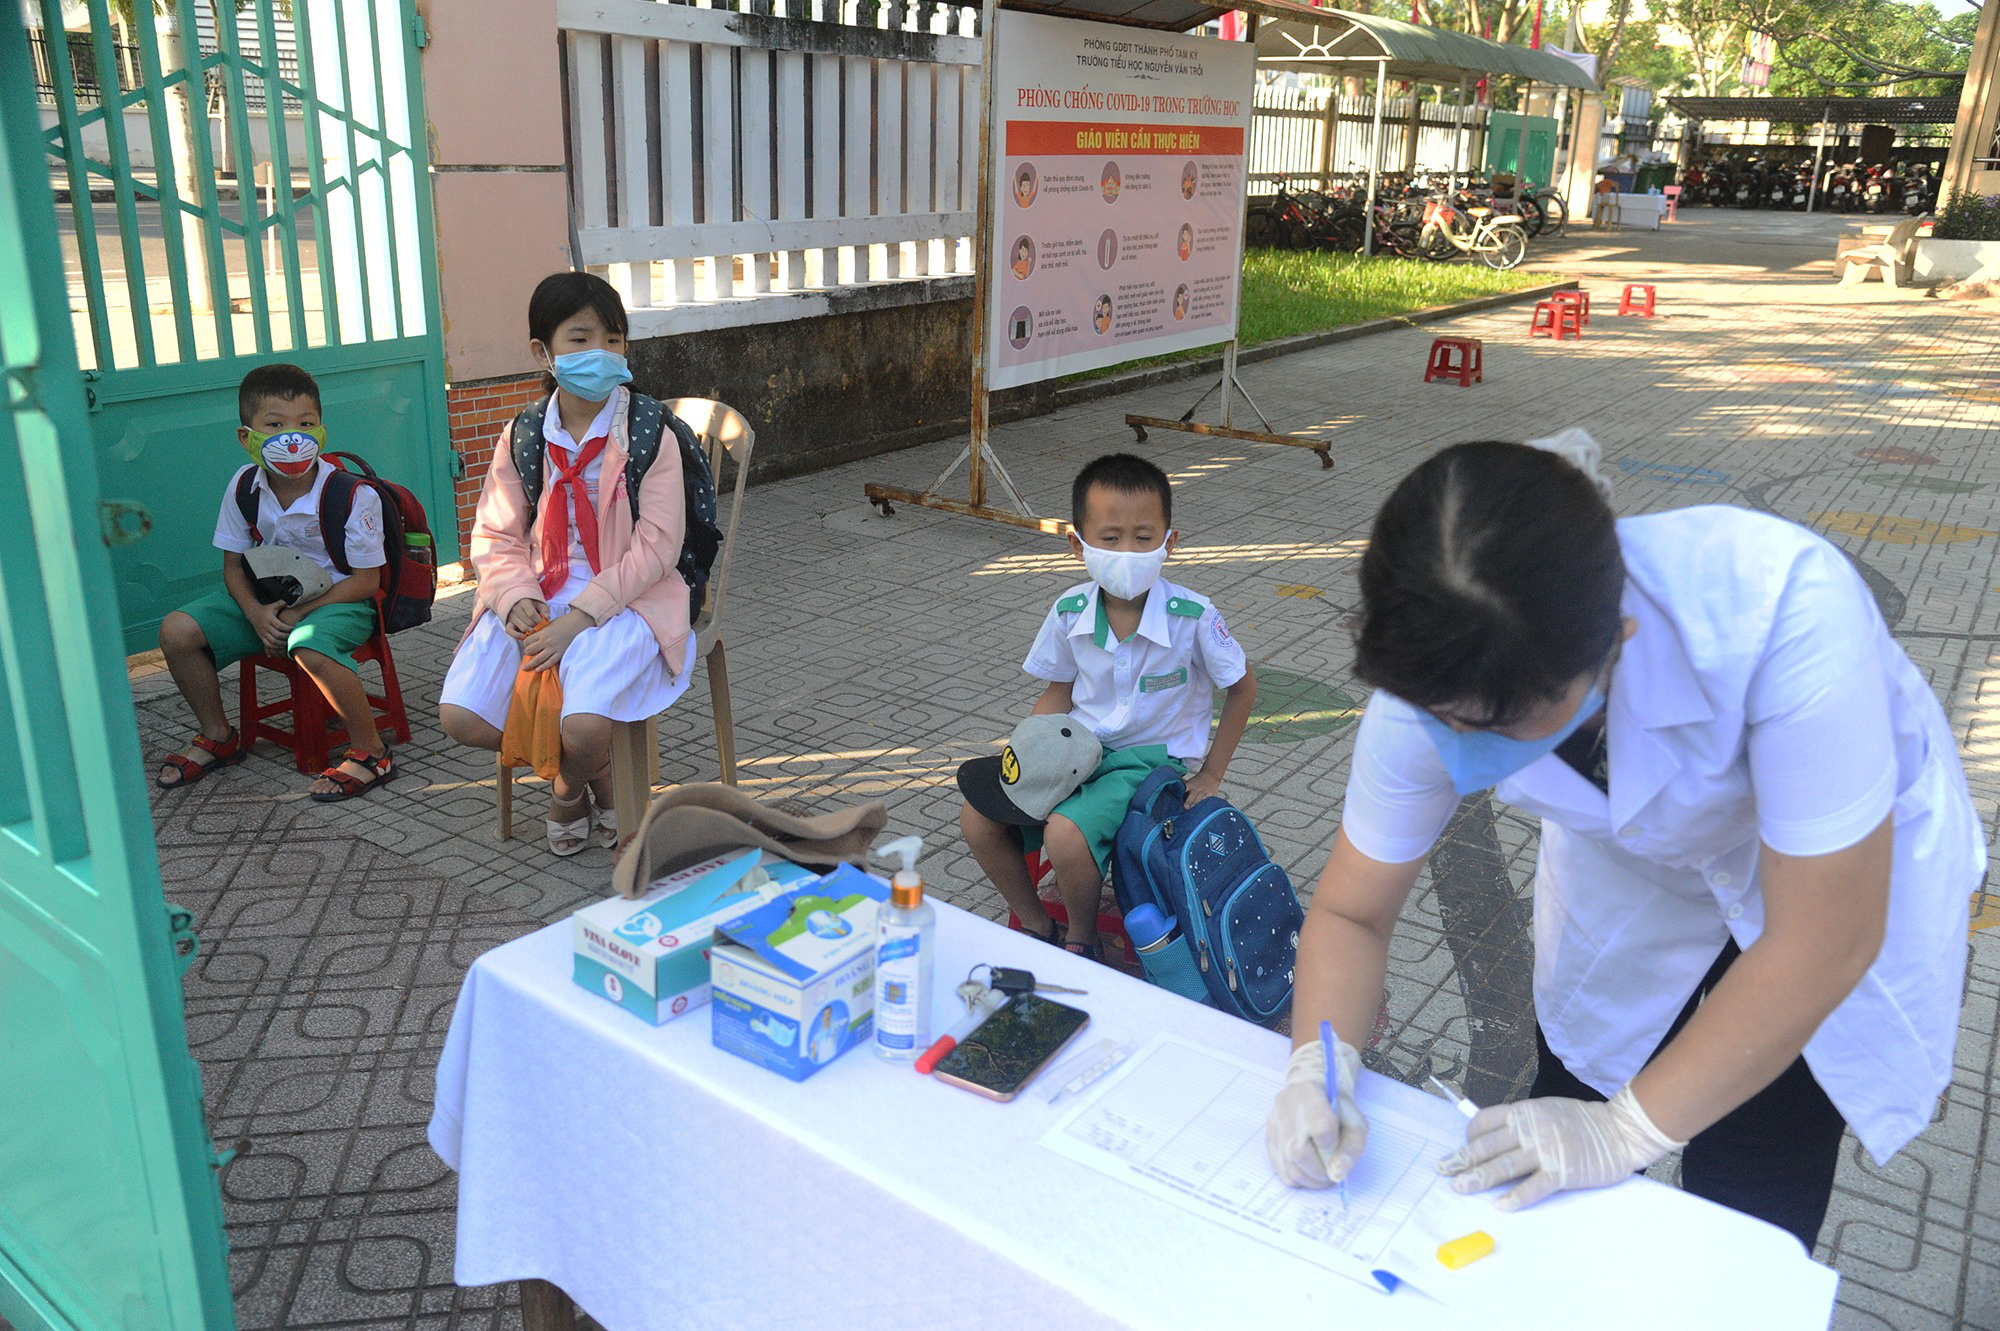 Elementary school students in Quang Nam Province have their health monitored before entering the school on May 4, 2020. Photo: Le Trung / Tuoi Tre